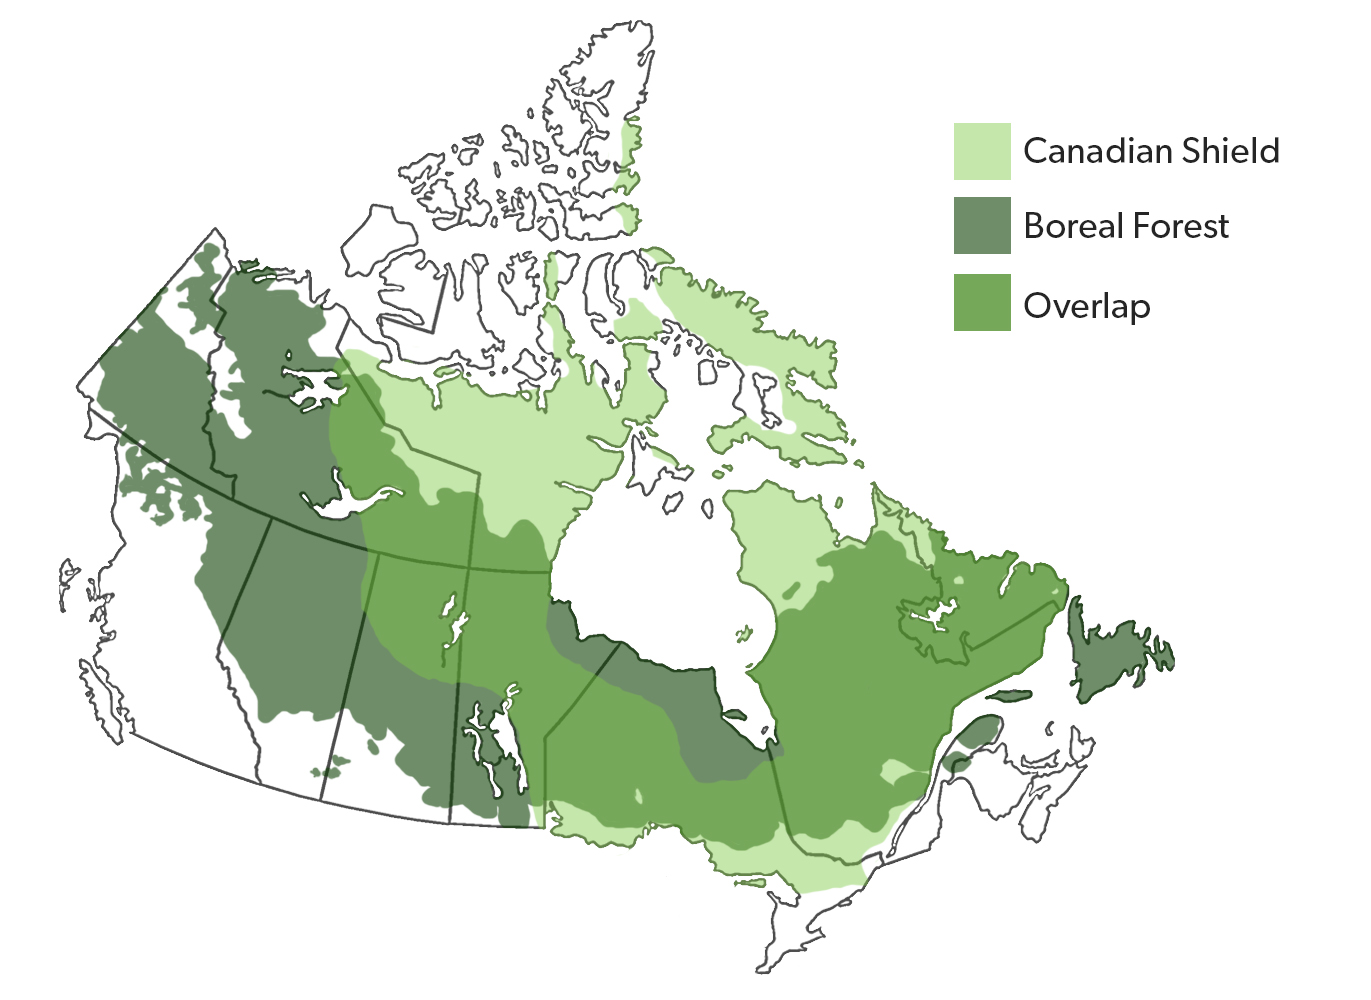 Canadian Shield and the Boreal Forest